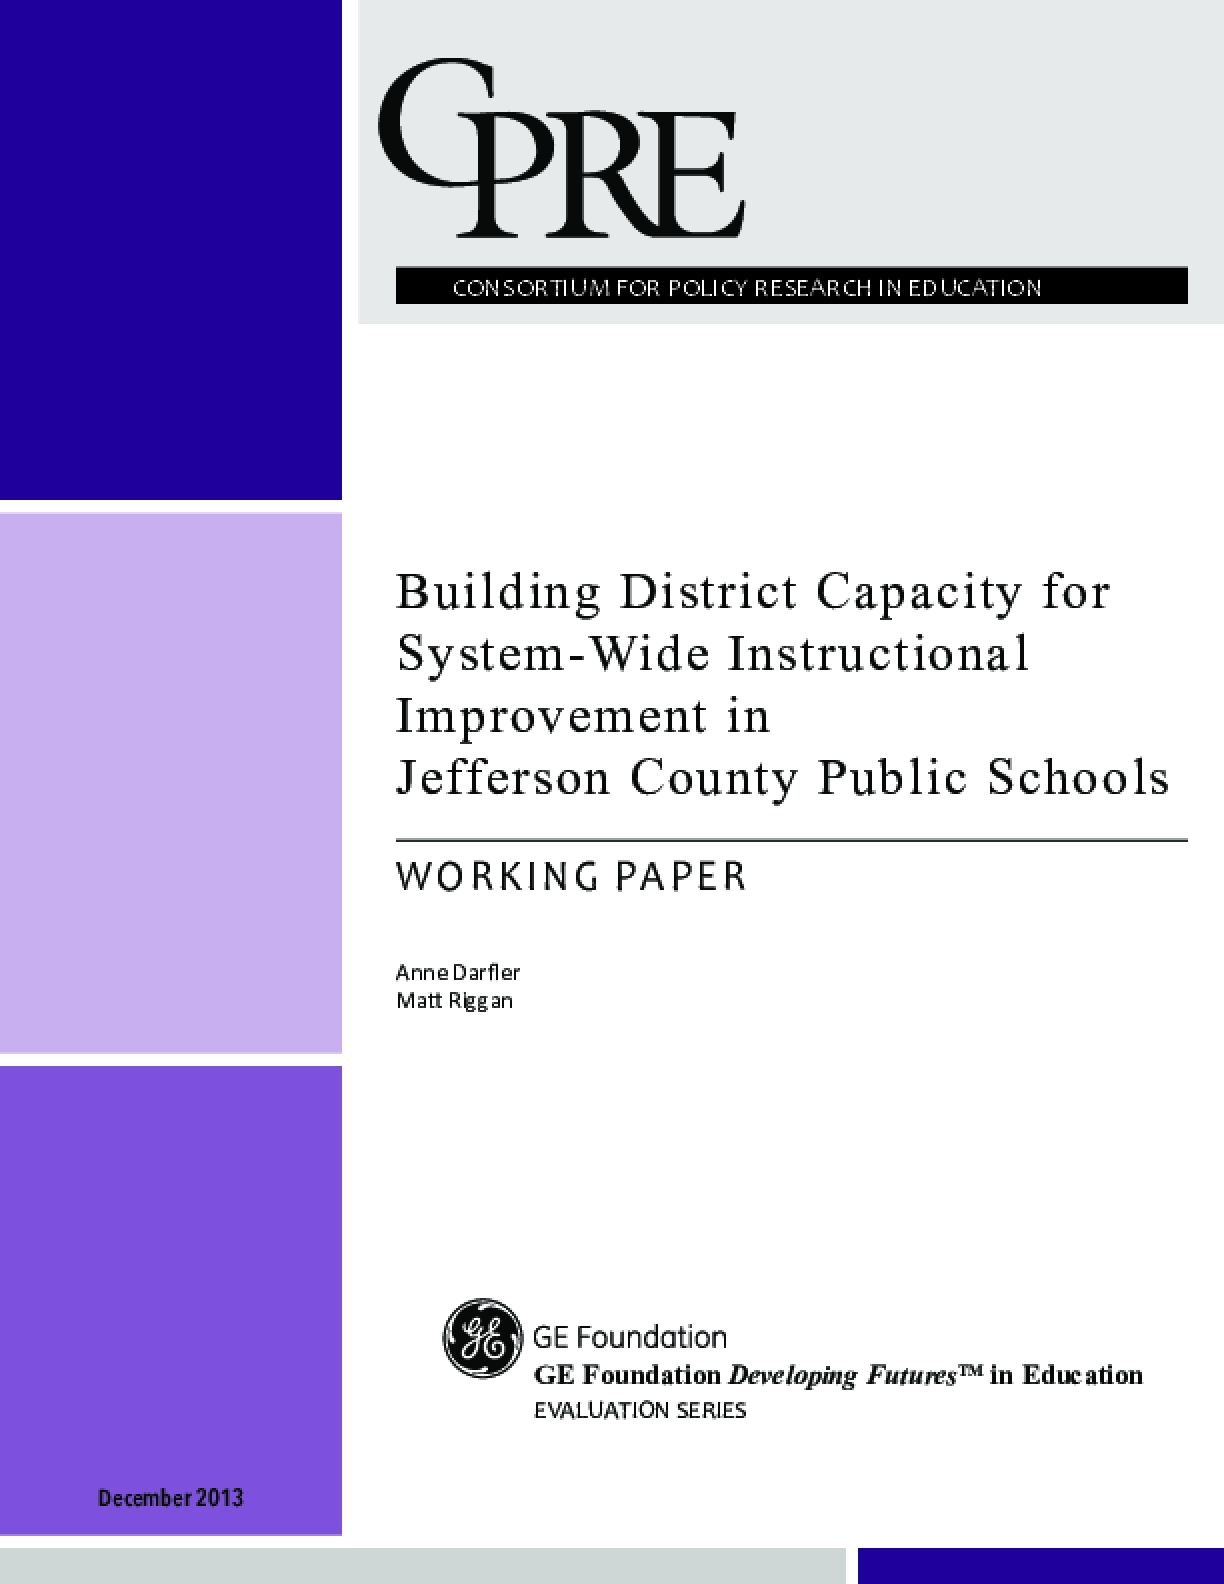 Building District Capacity for System-Wide Instructional Improvement in Jefferson County Public Schools